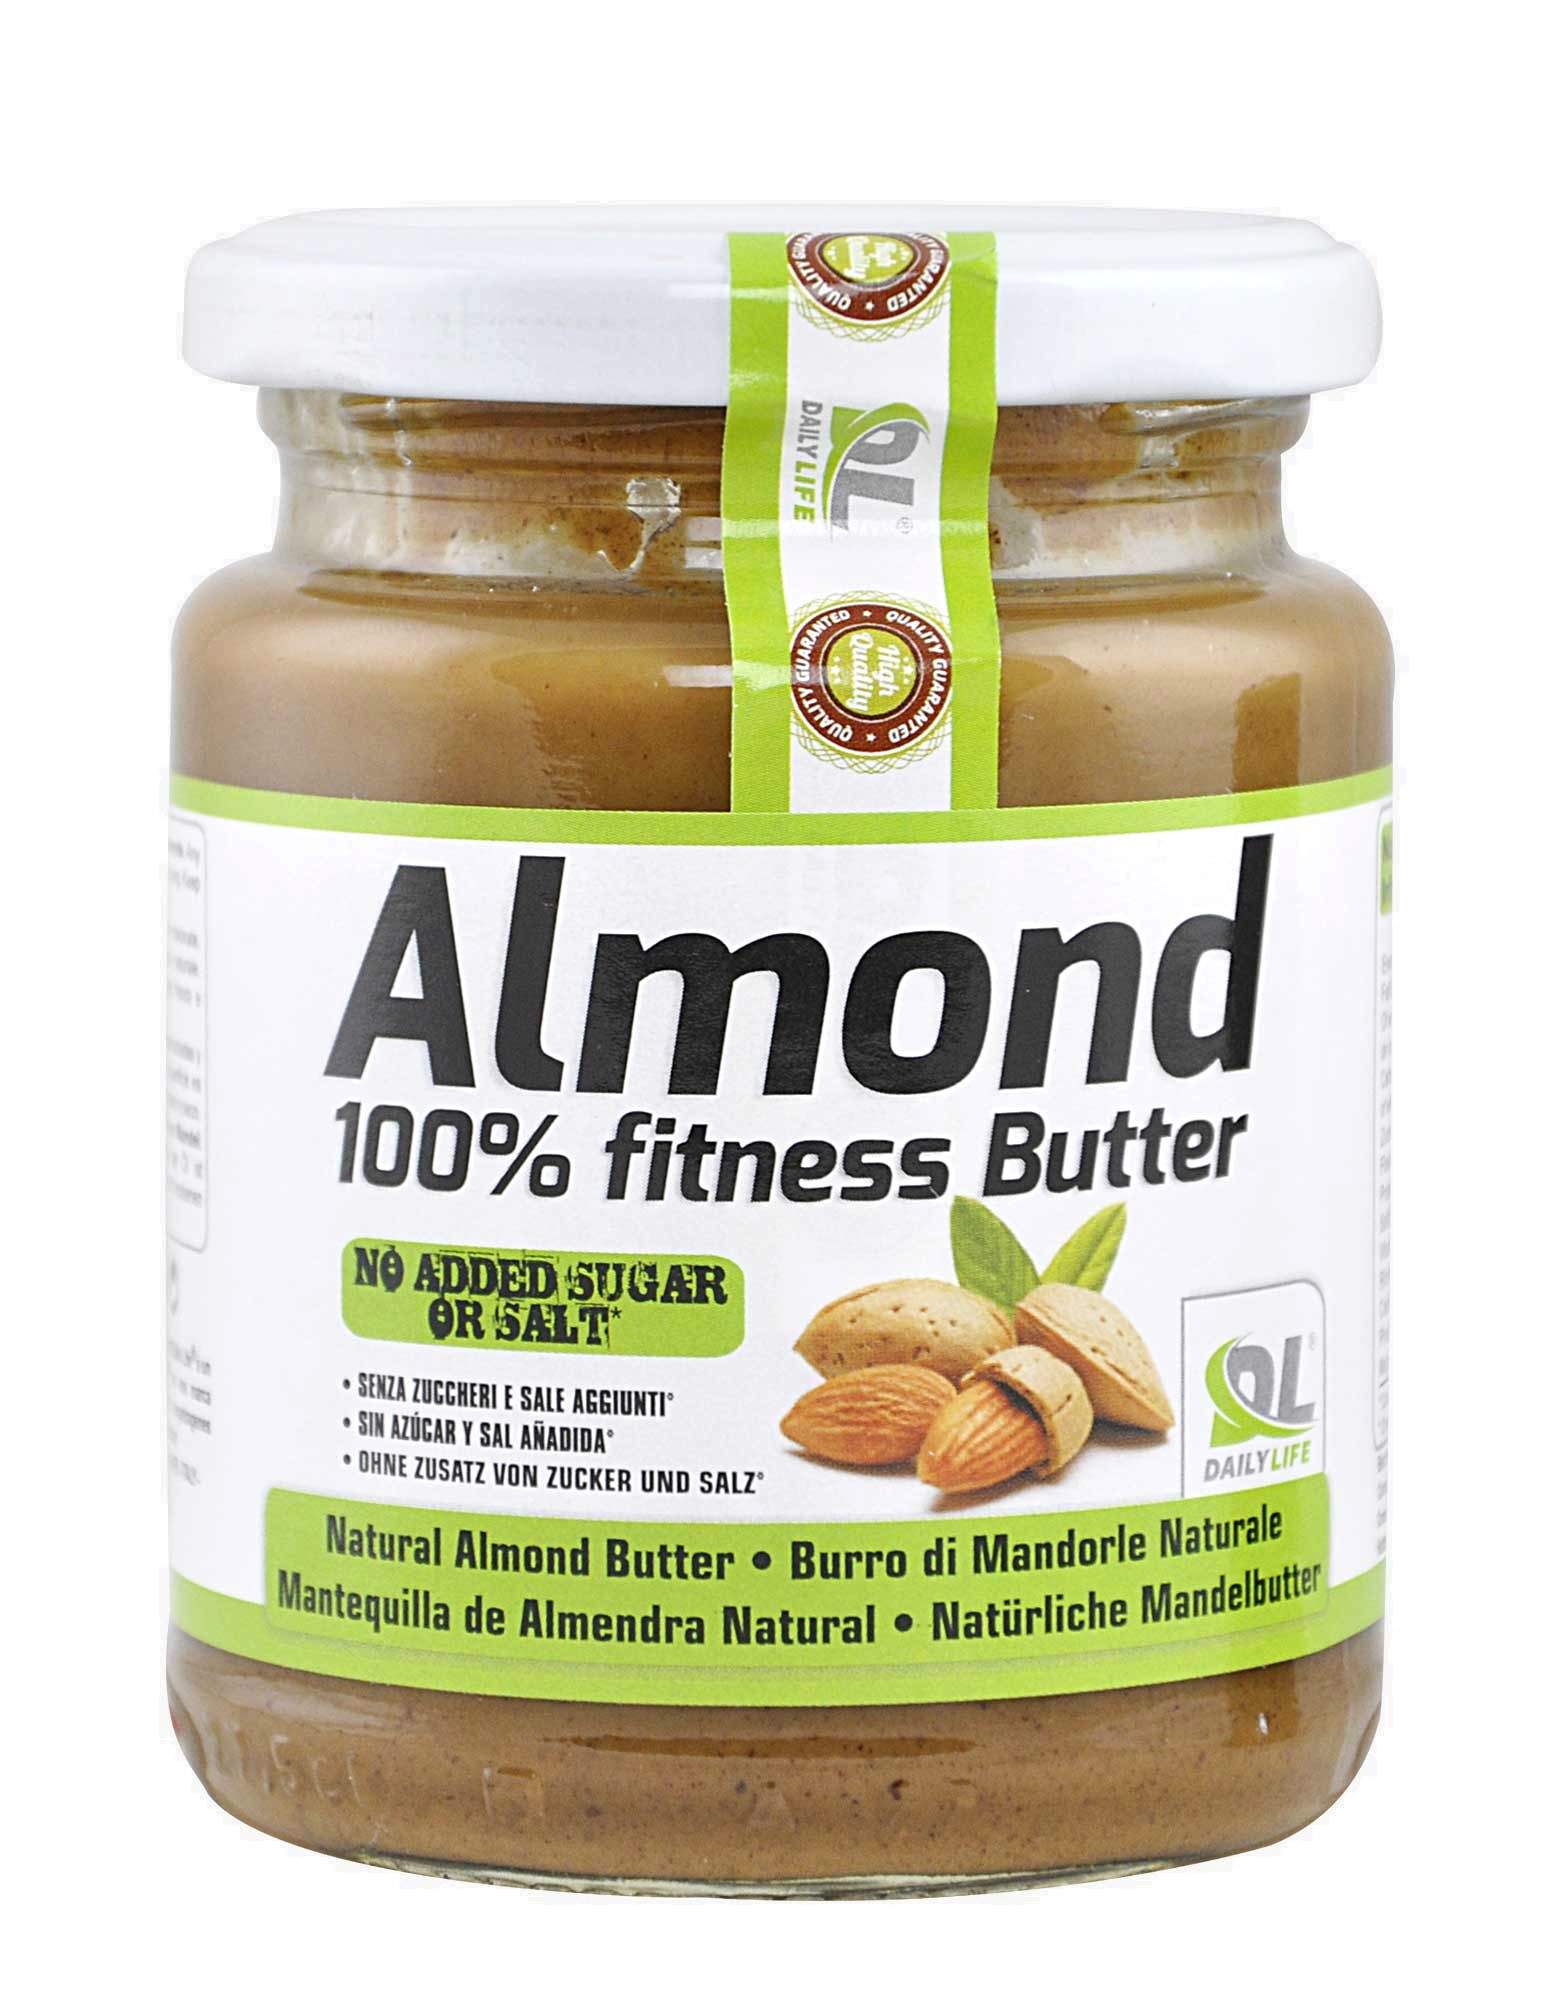 Almond 100% Fitness Butter by DAILY LIFE (250 grams)1566 x 2000 jpeg 253kB